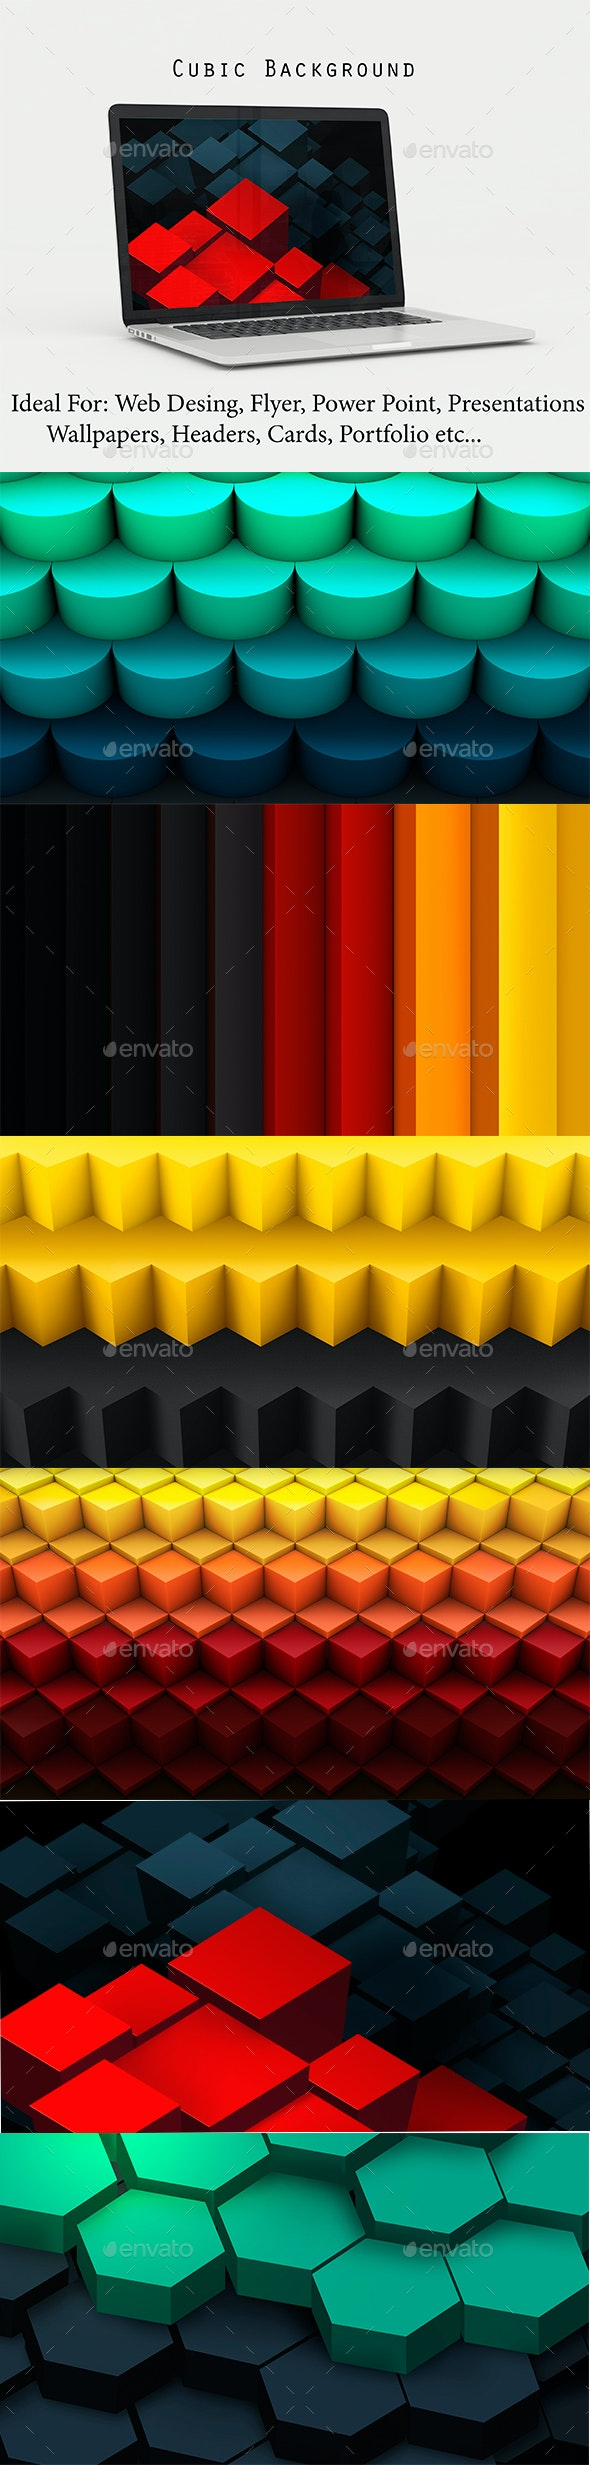 Cubic Background - Abstract Backgrounds